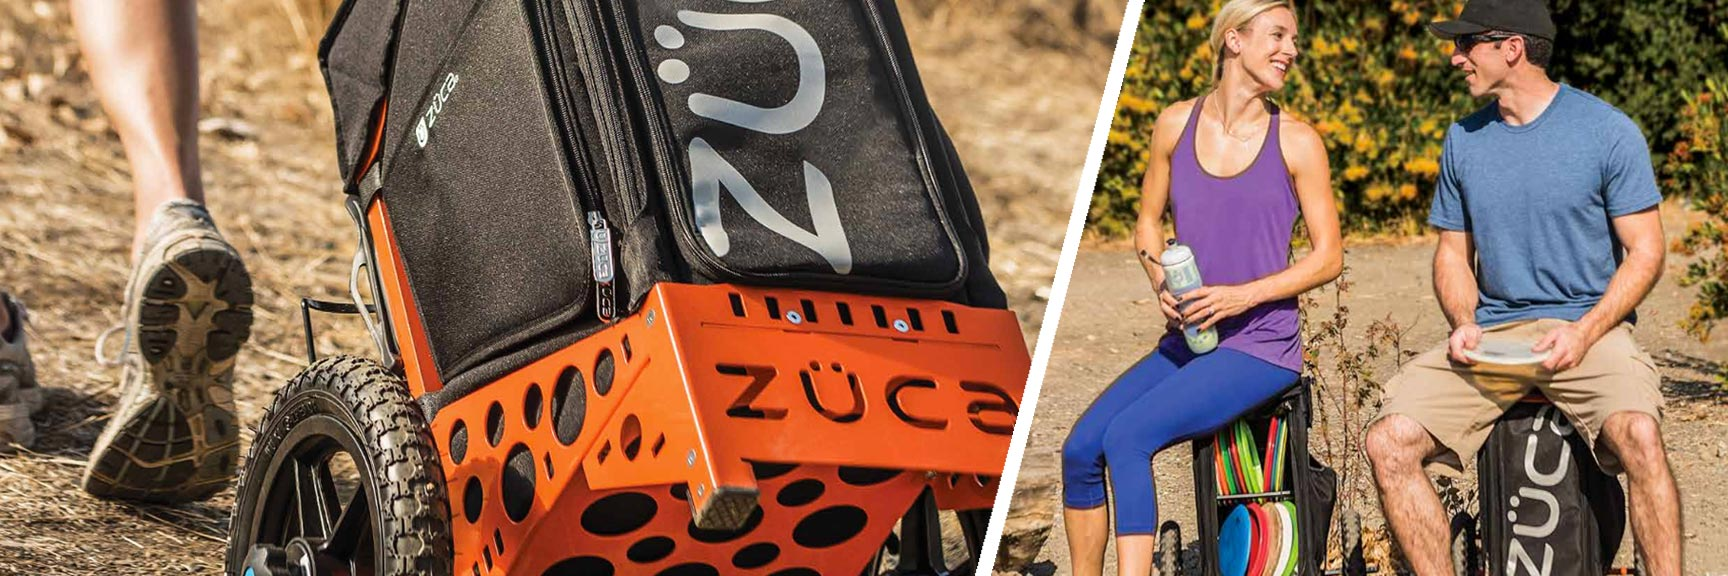 Zuca disc golf cart is back in stock